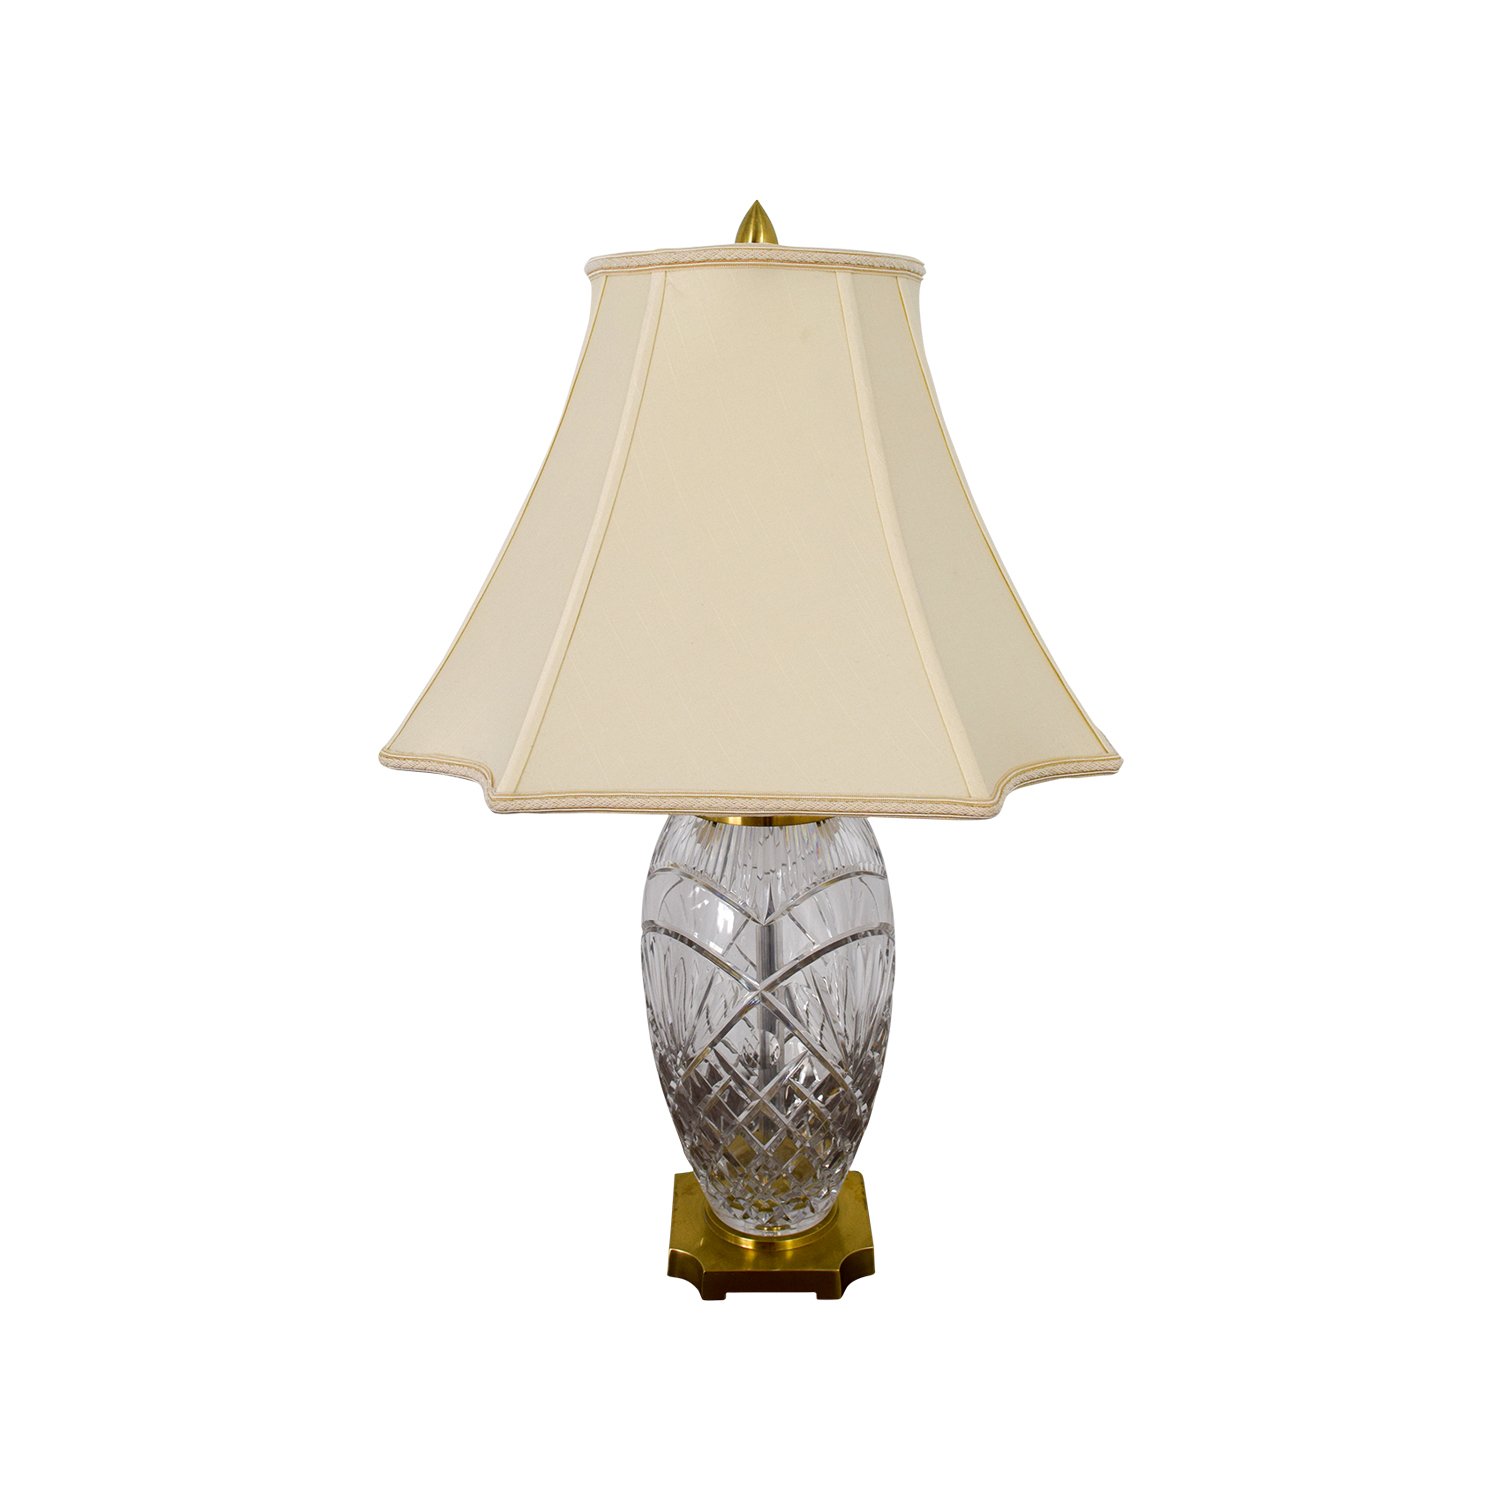 buy Waterford Waterford Glass Table Lamp online